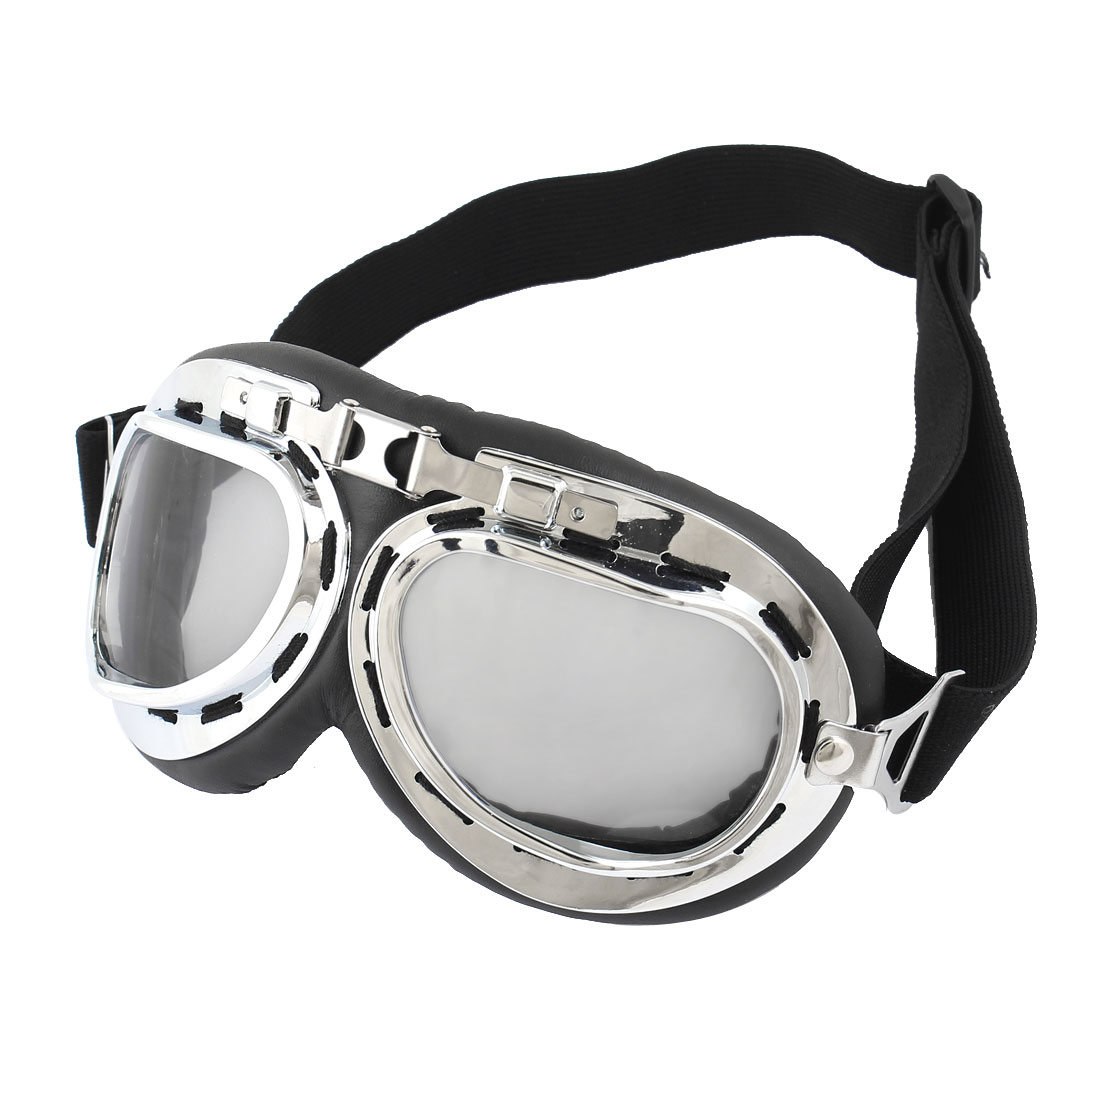 Clear Gray Lens Cycling Outdoor Protective Glasses Anti Fog Ski Goggles